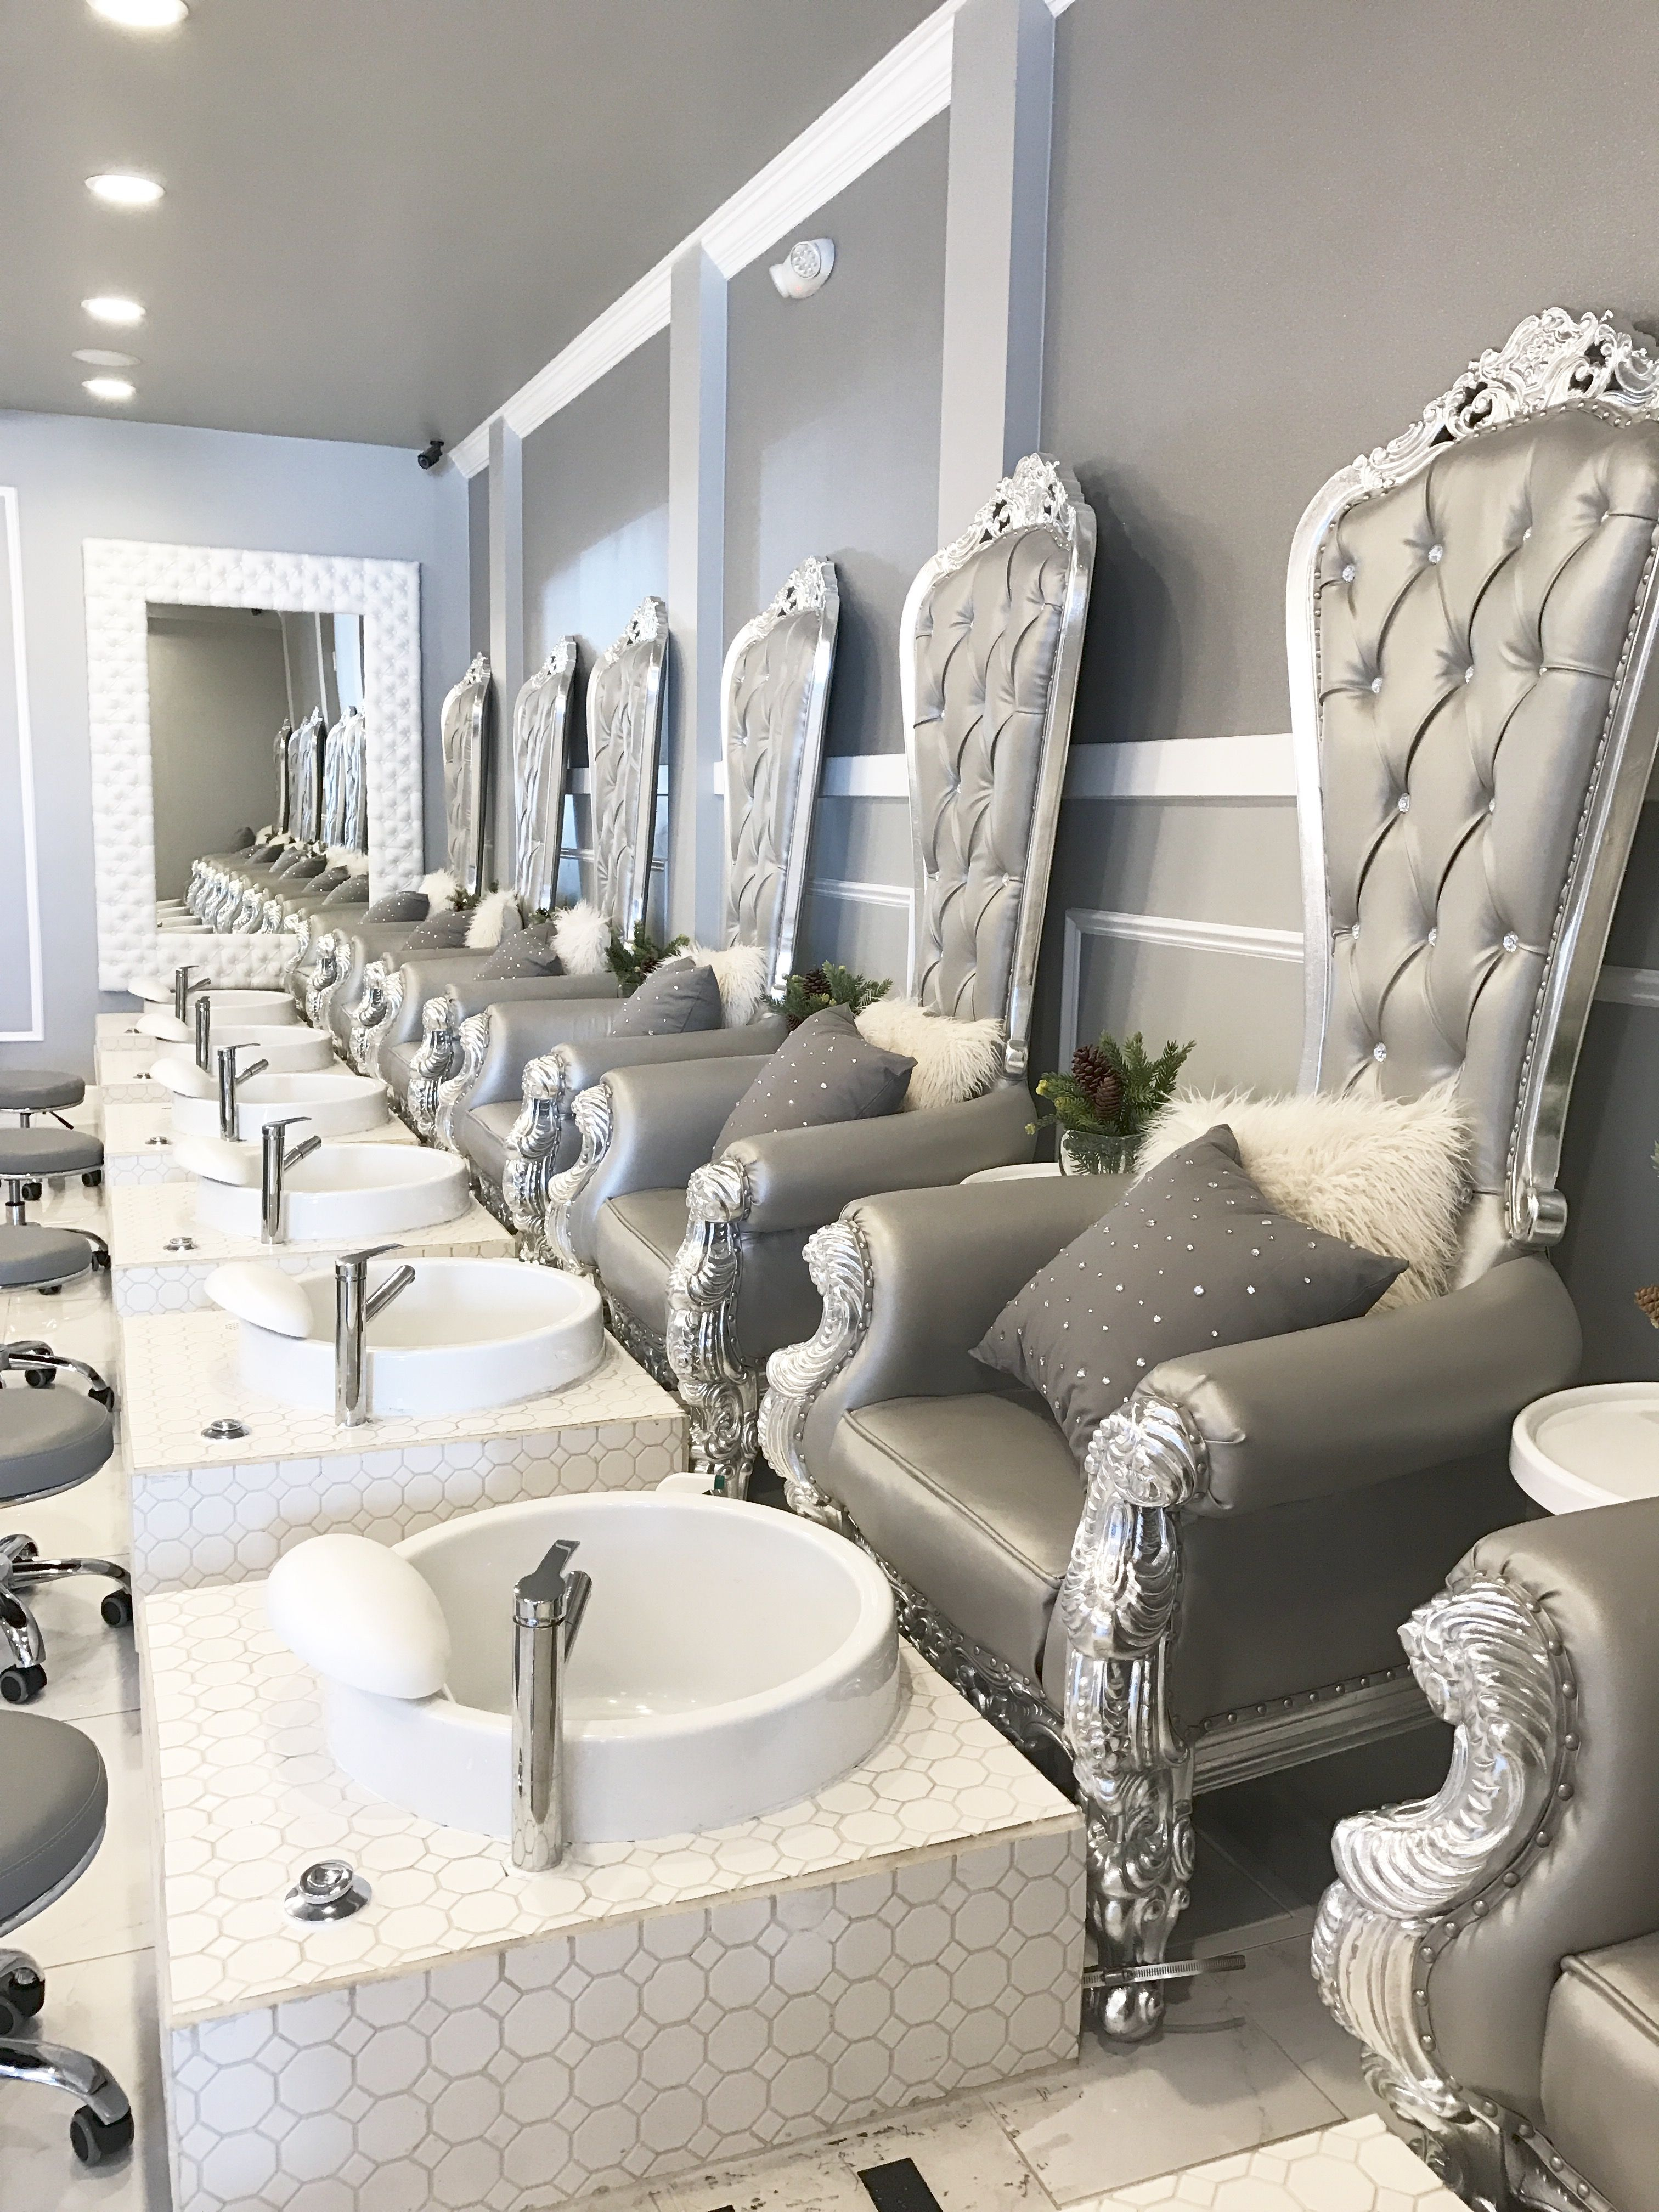 Nail salon design | Nail salon decor | Pinterest | Salons ...